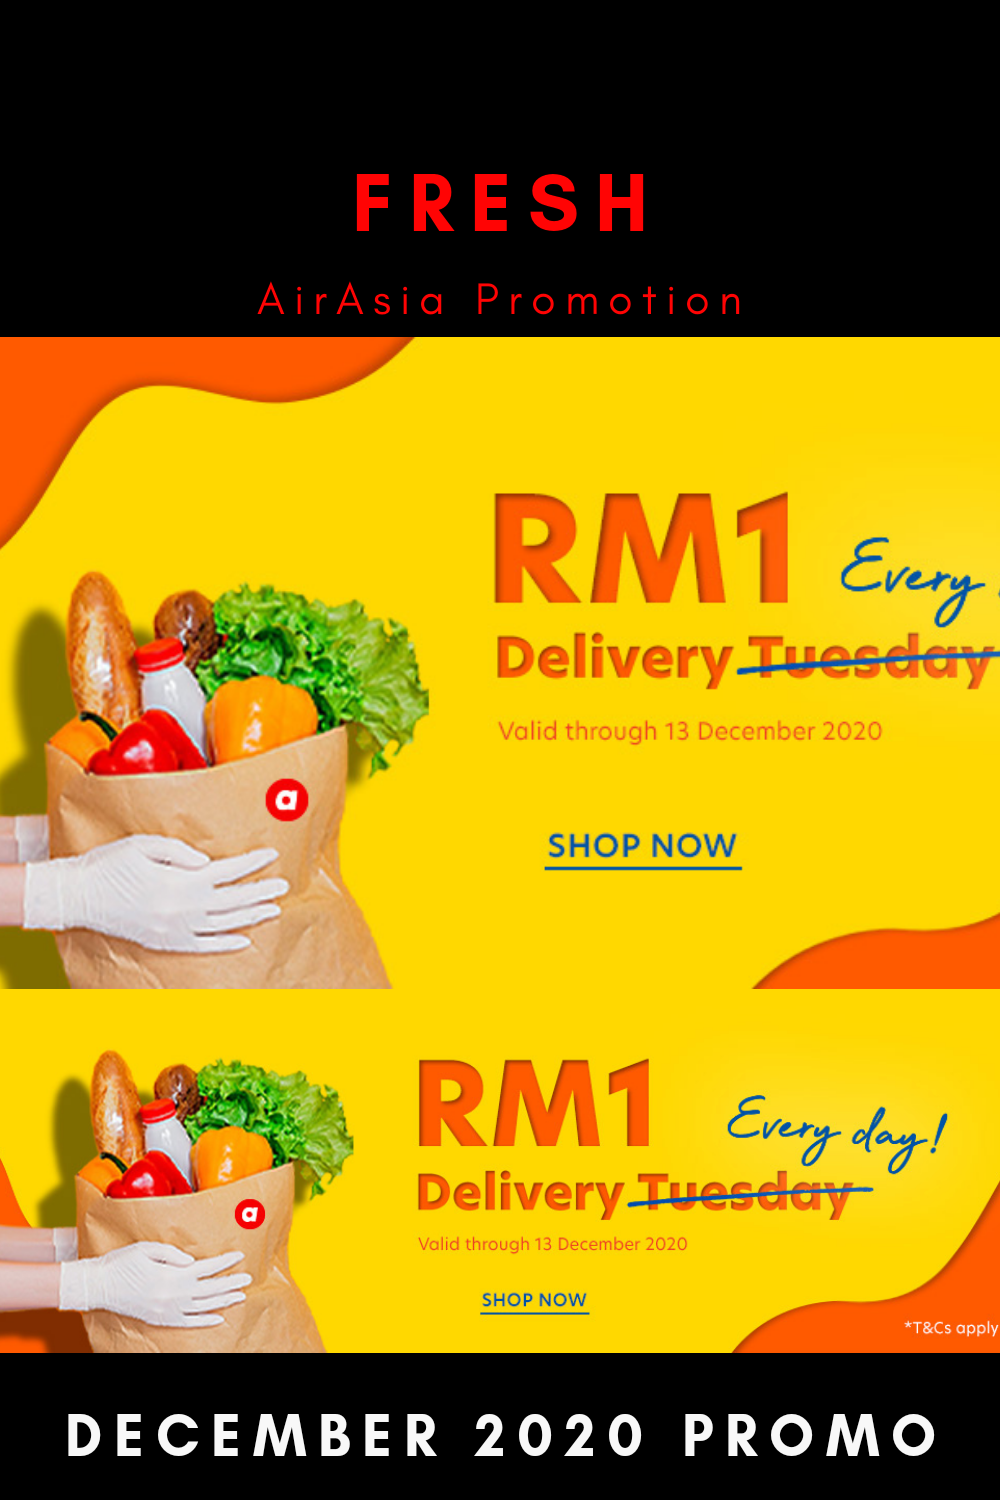 Fresh.Airasia Groceries Shopping RM 1 Delivery Sitewide December 2020 Promotion